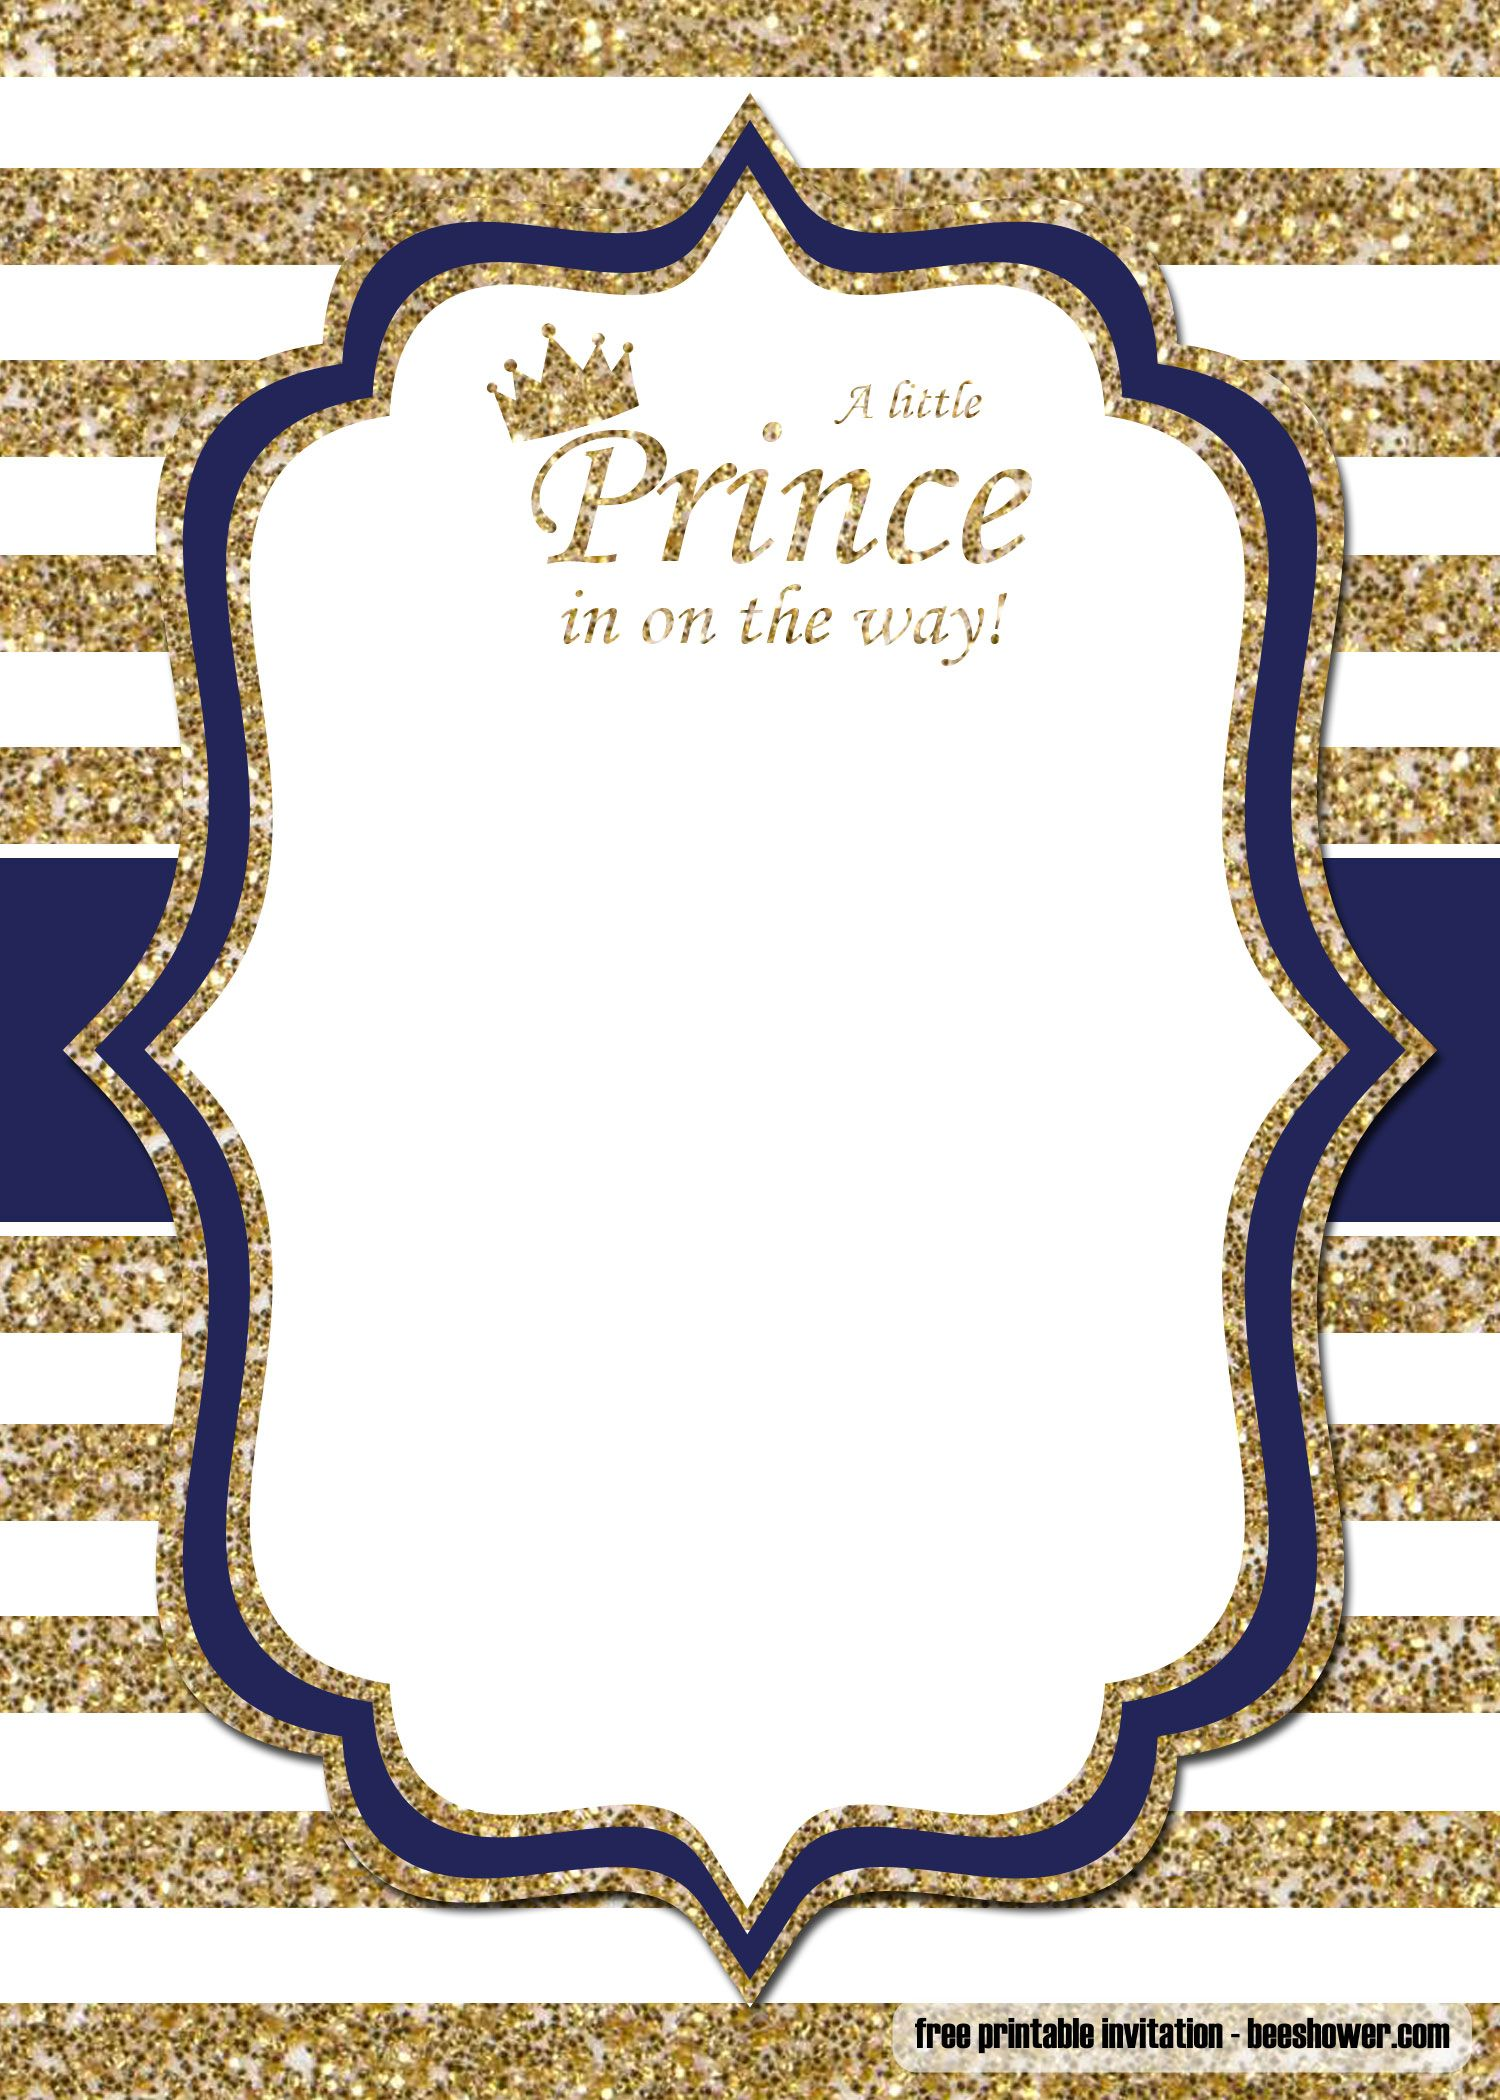 FREE Prince Baby Shower Invitations Templates  Royal baby shower